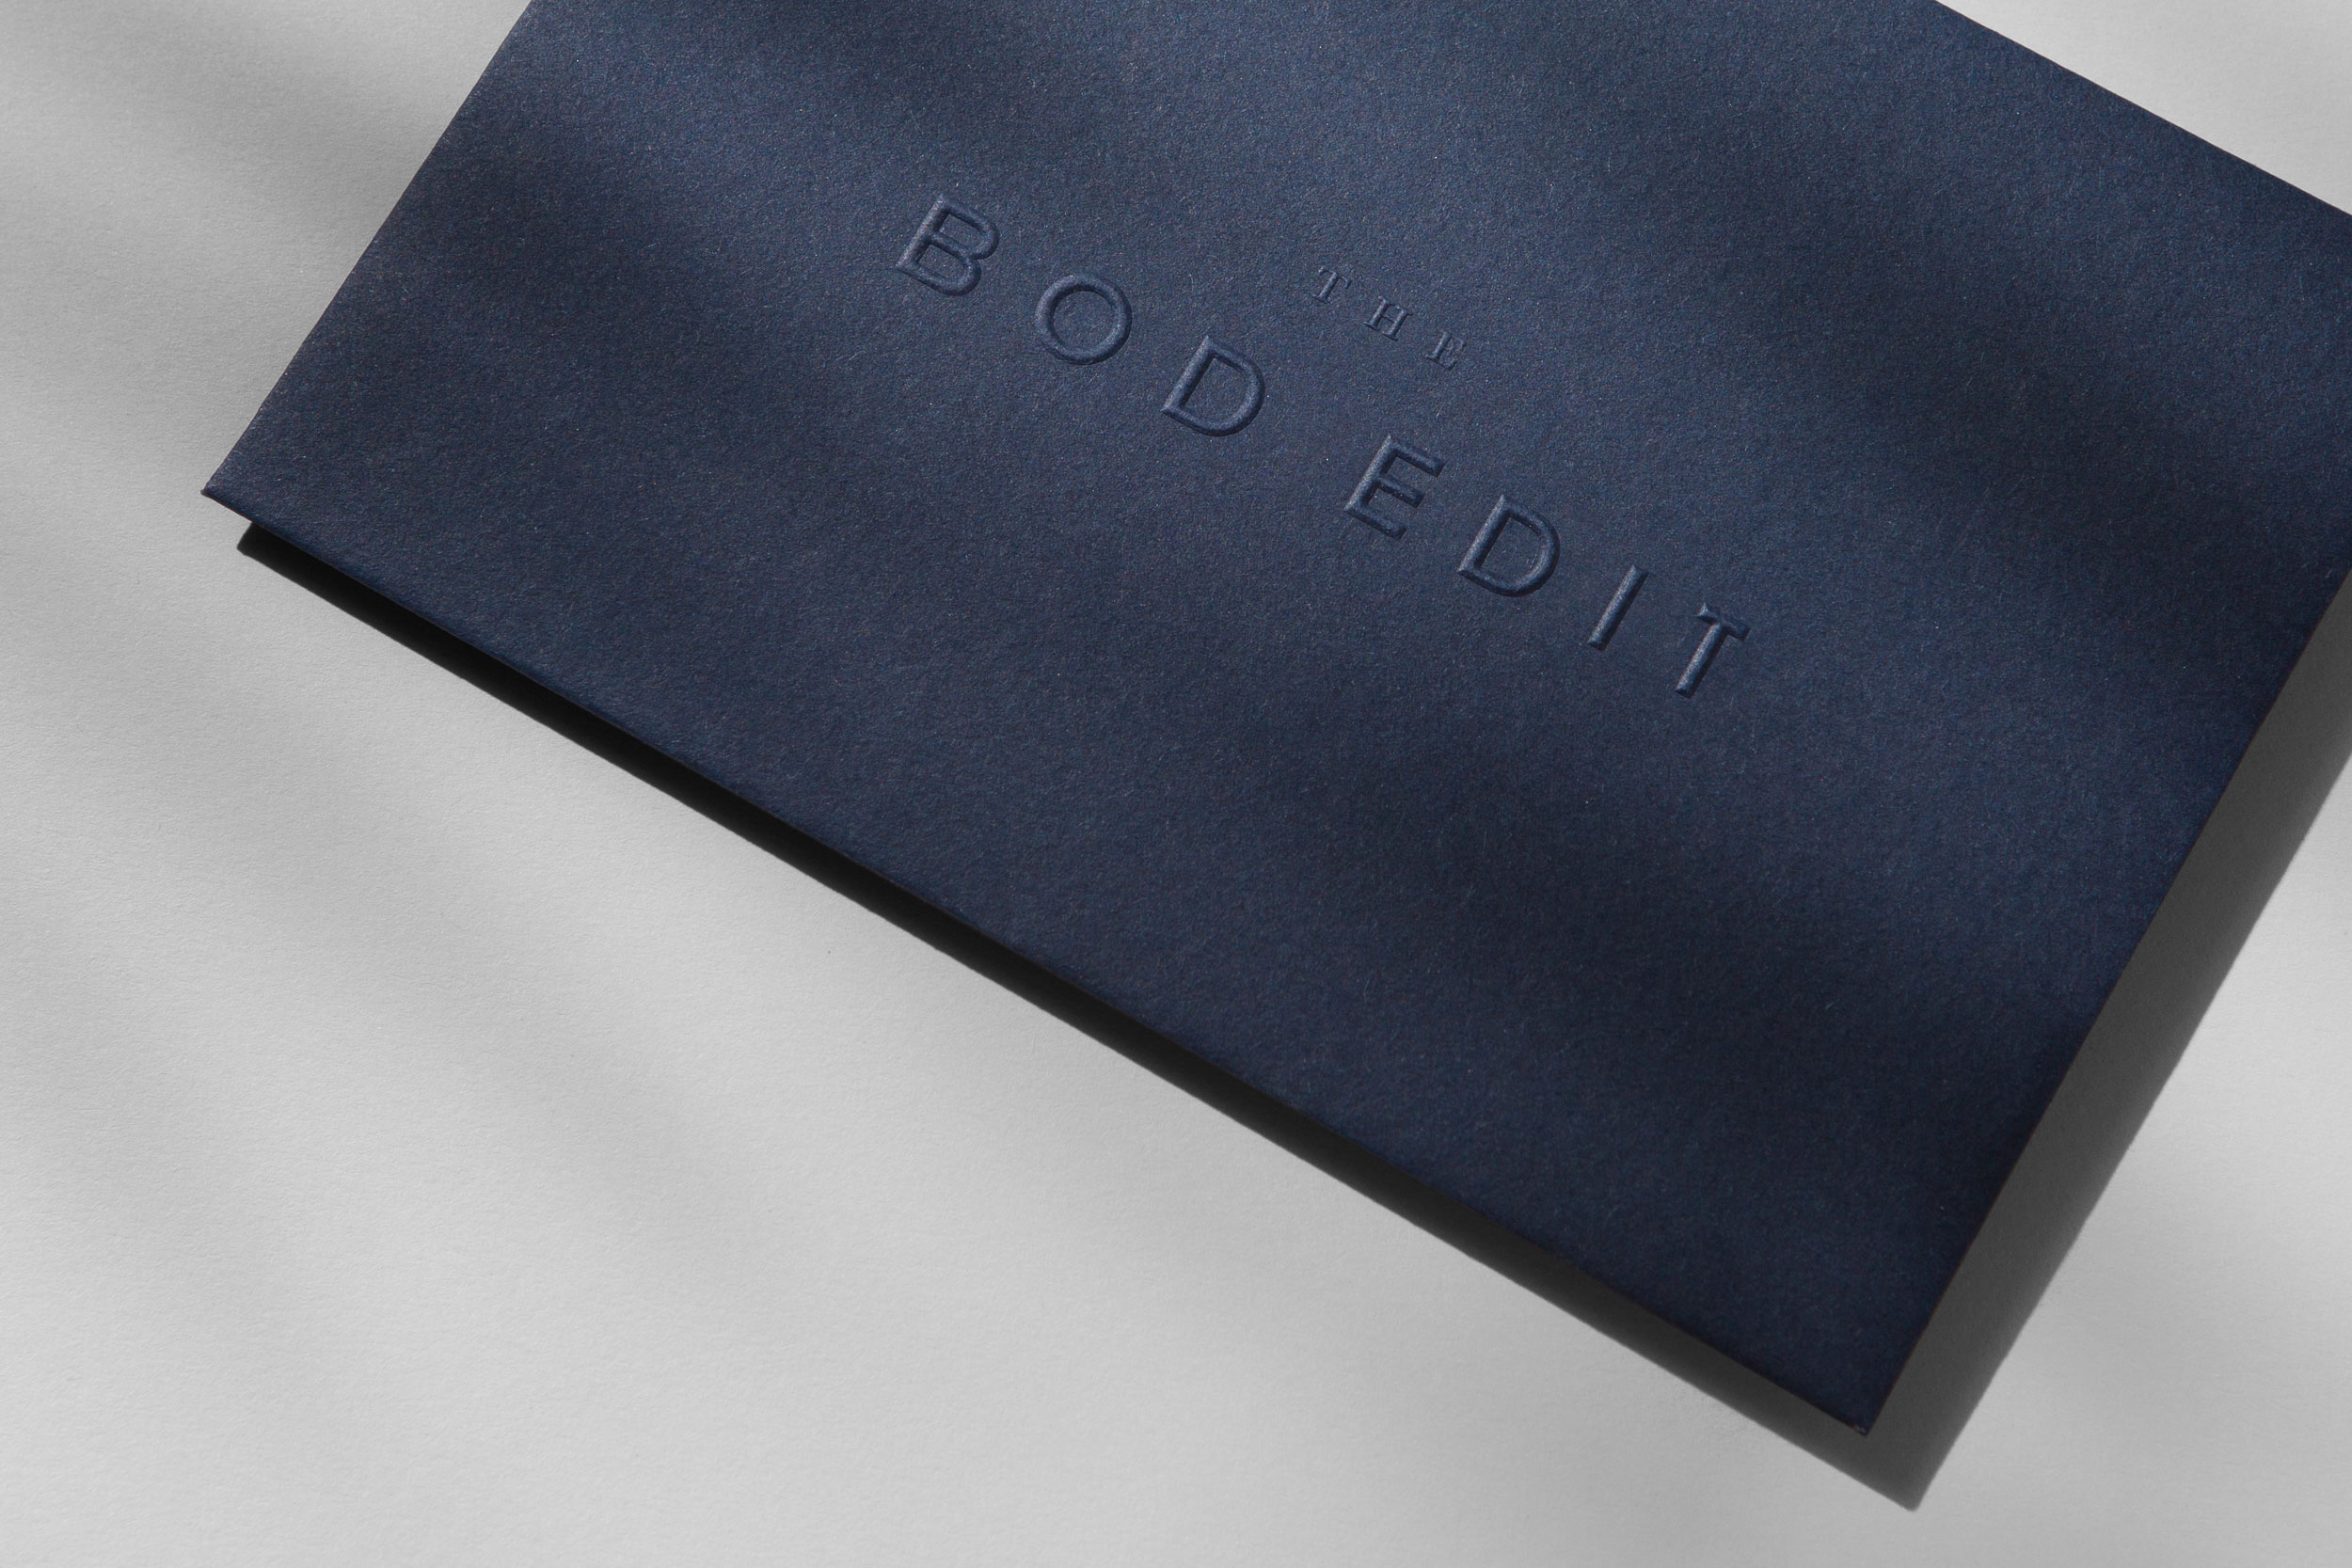 The Bod Edit - Graphic Design by Neverland Studio